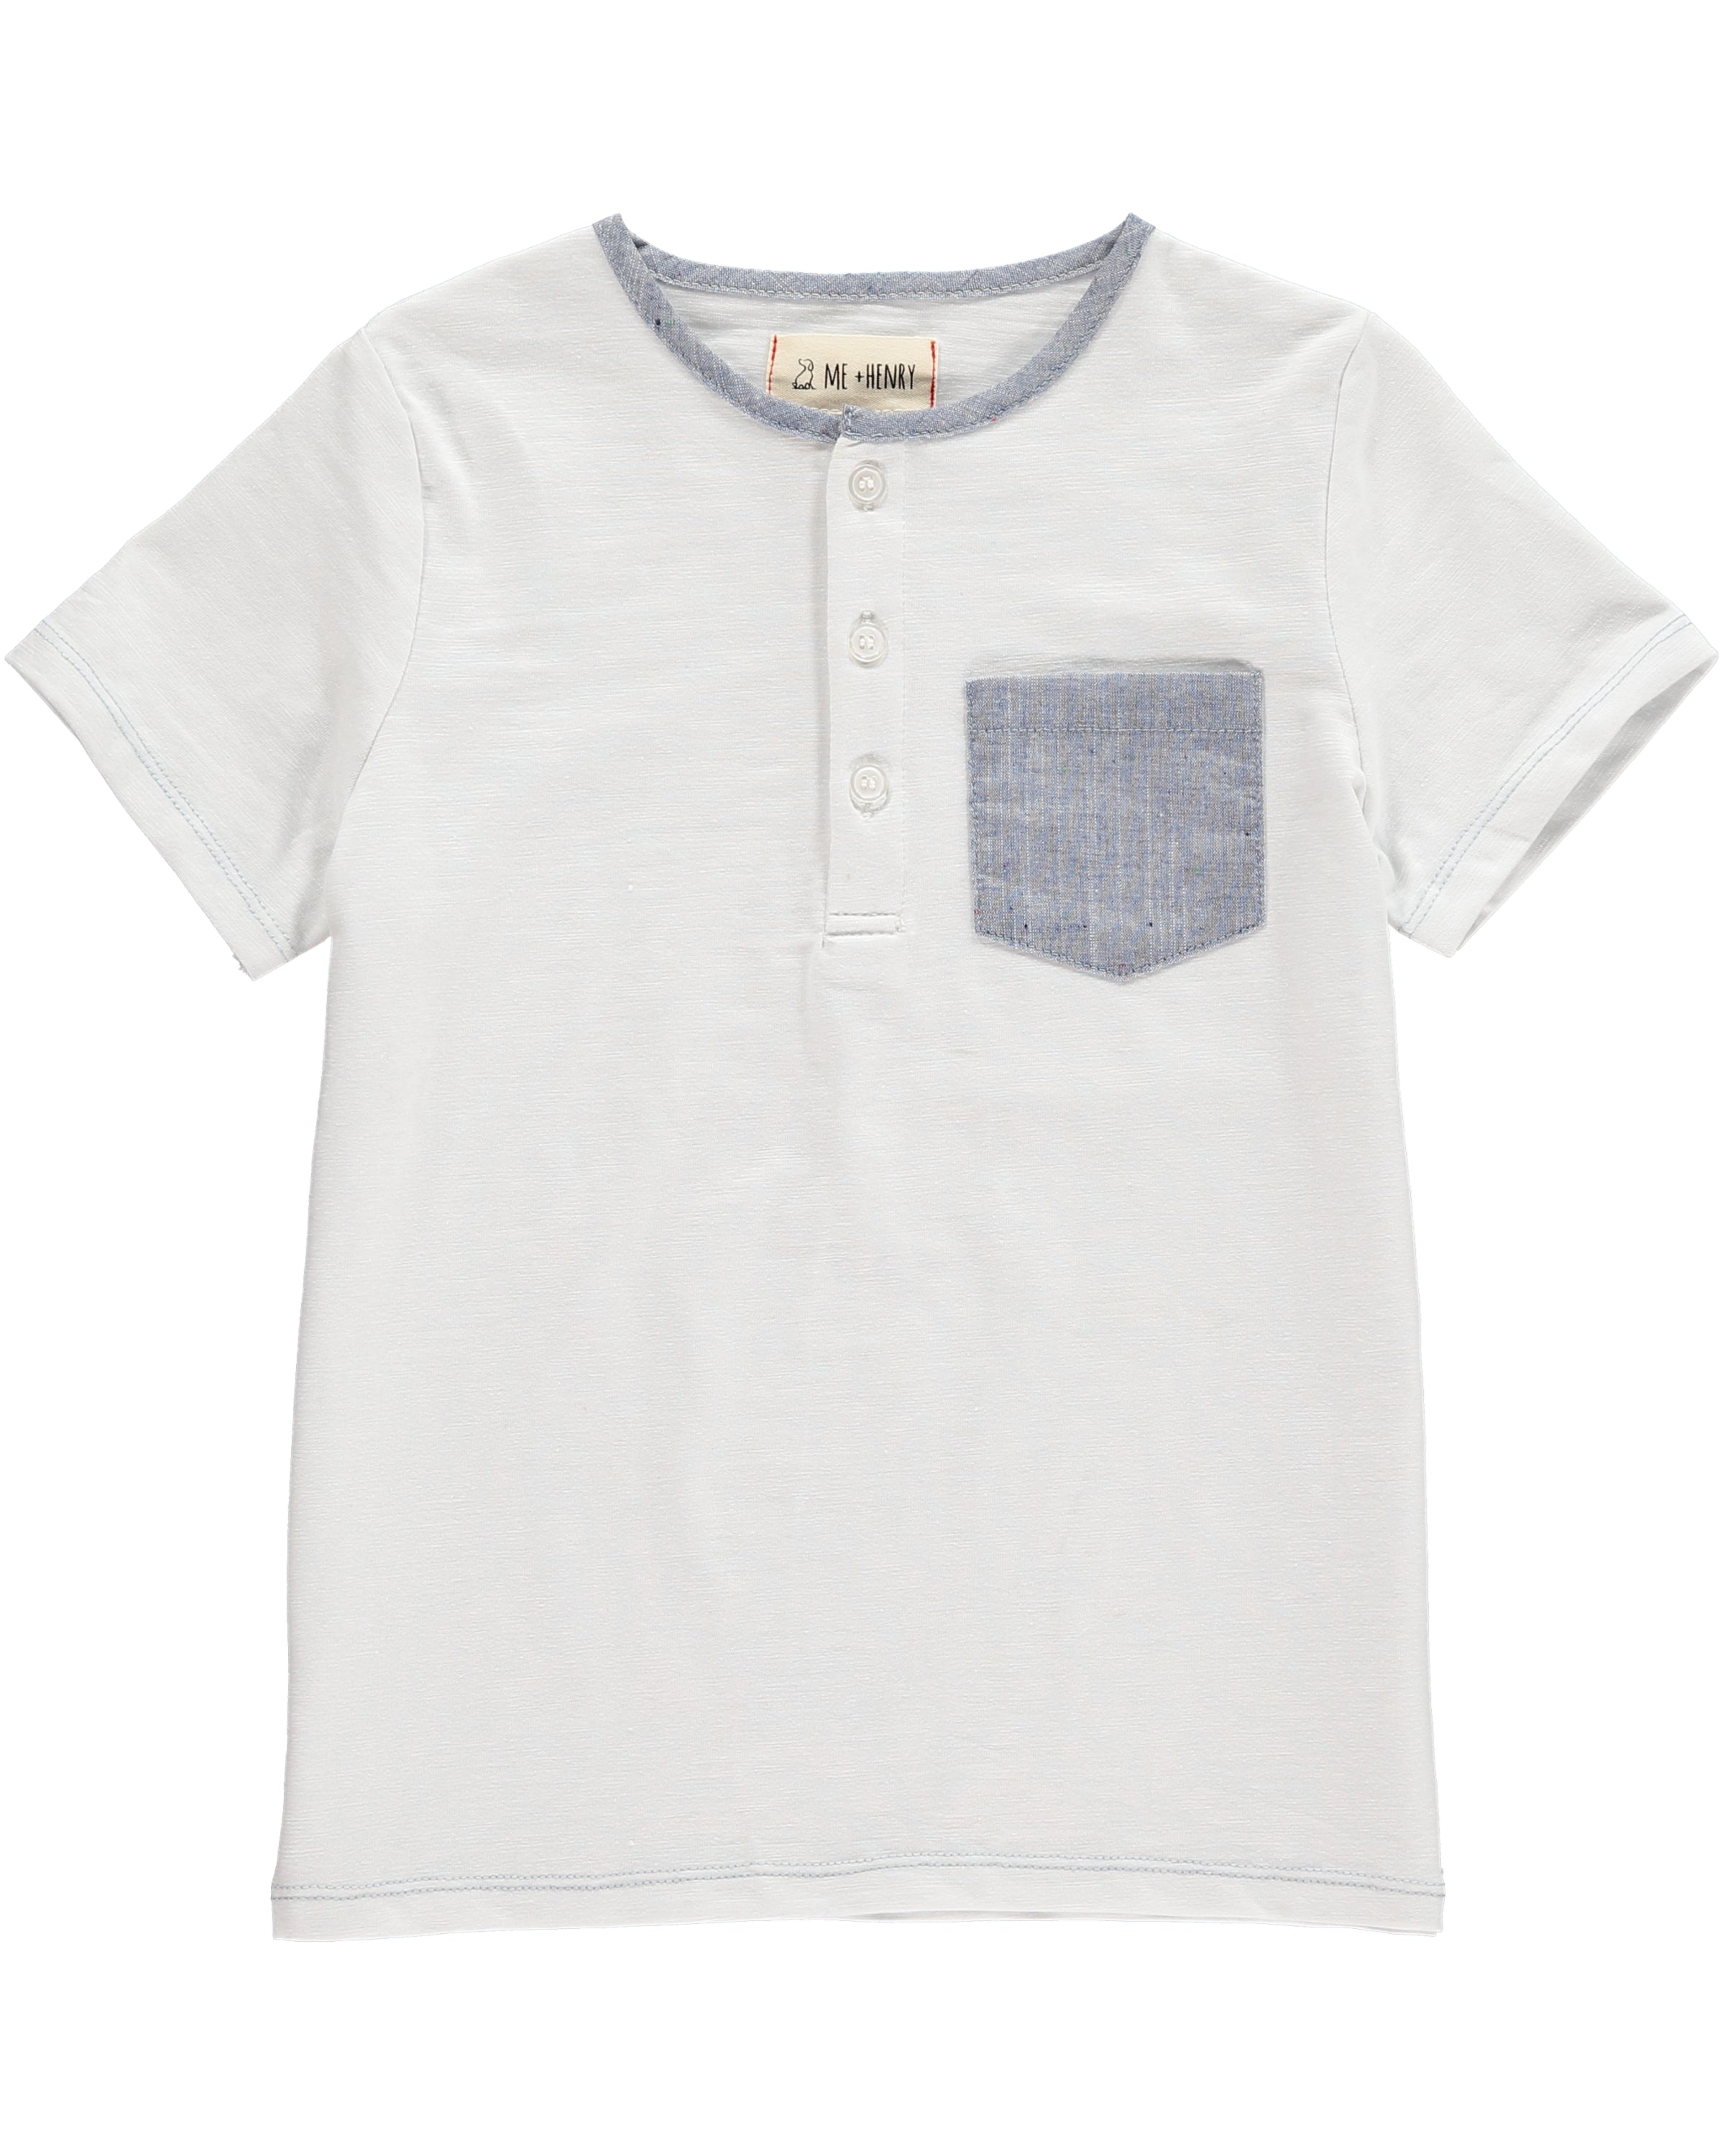 Boys Cotton White T-Shirt